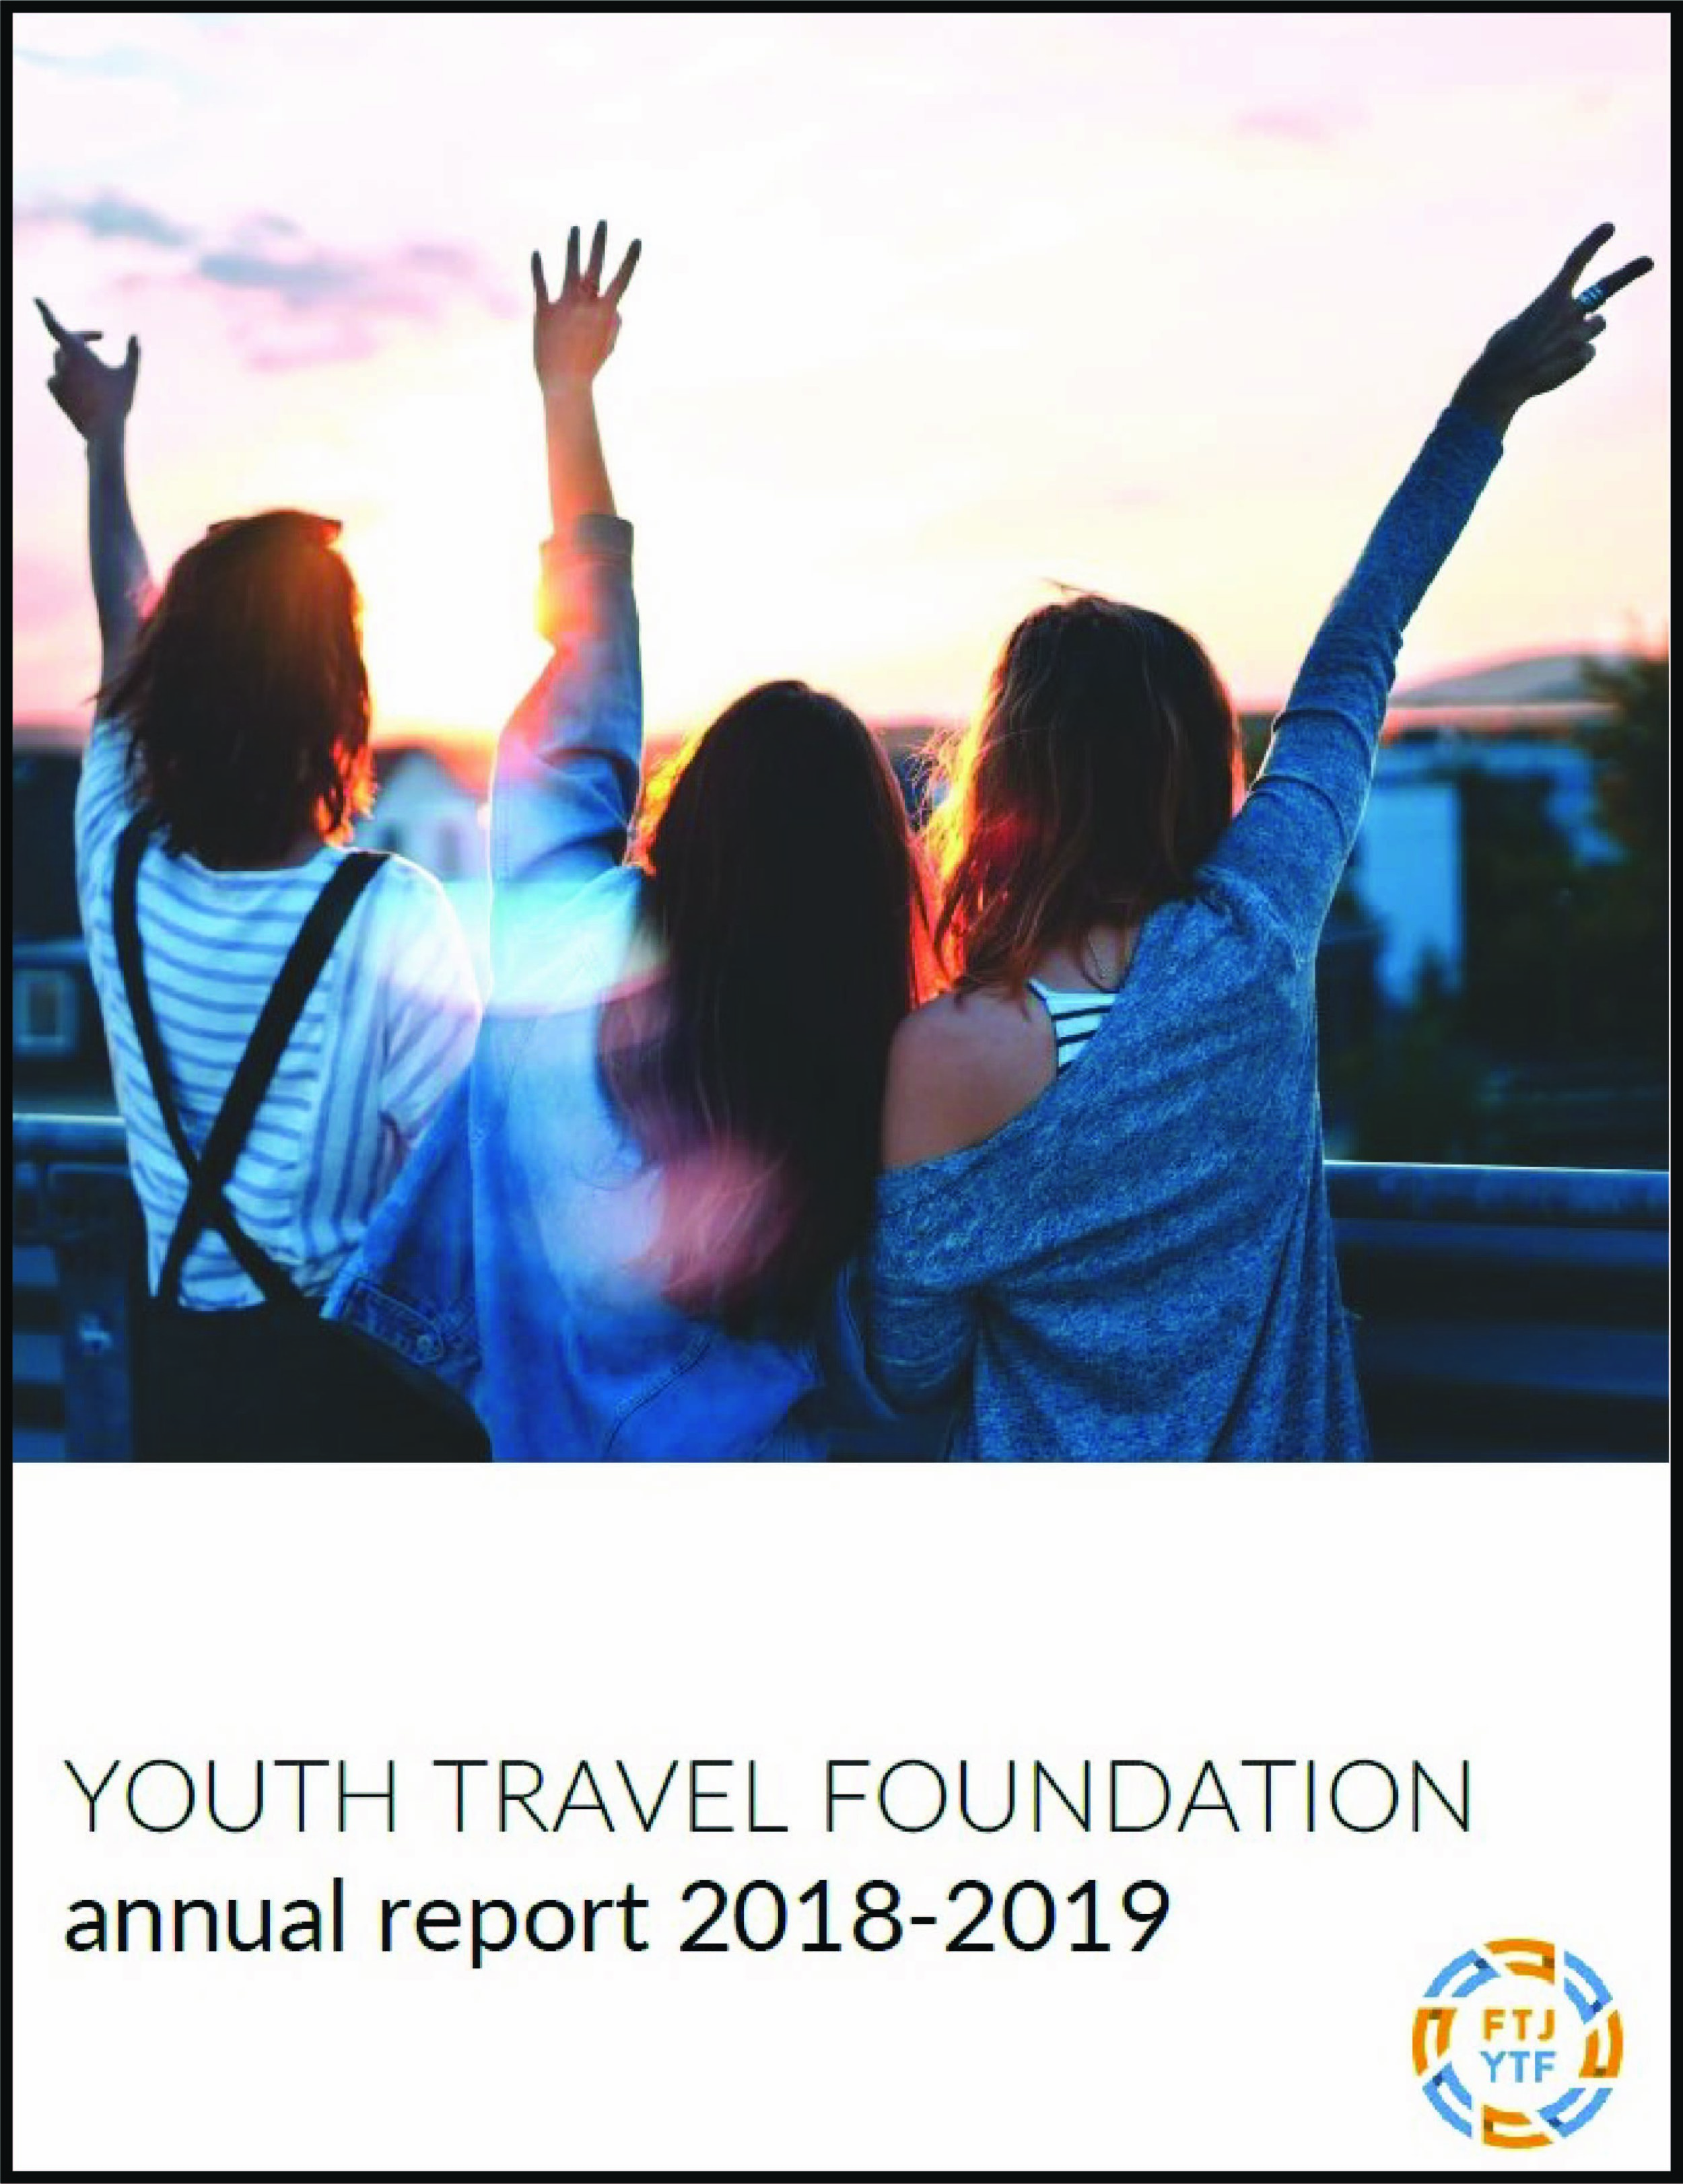 Annuel Report 2018-2019_Contact Us_Youth Travel Foundation.jpg